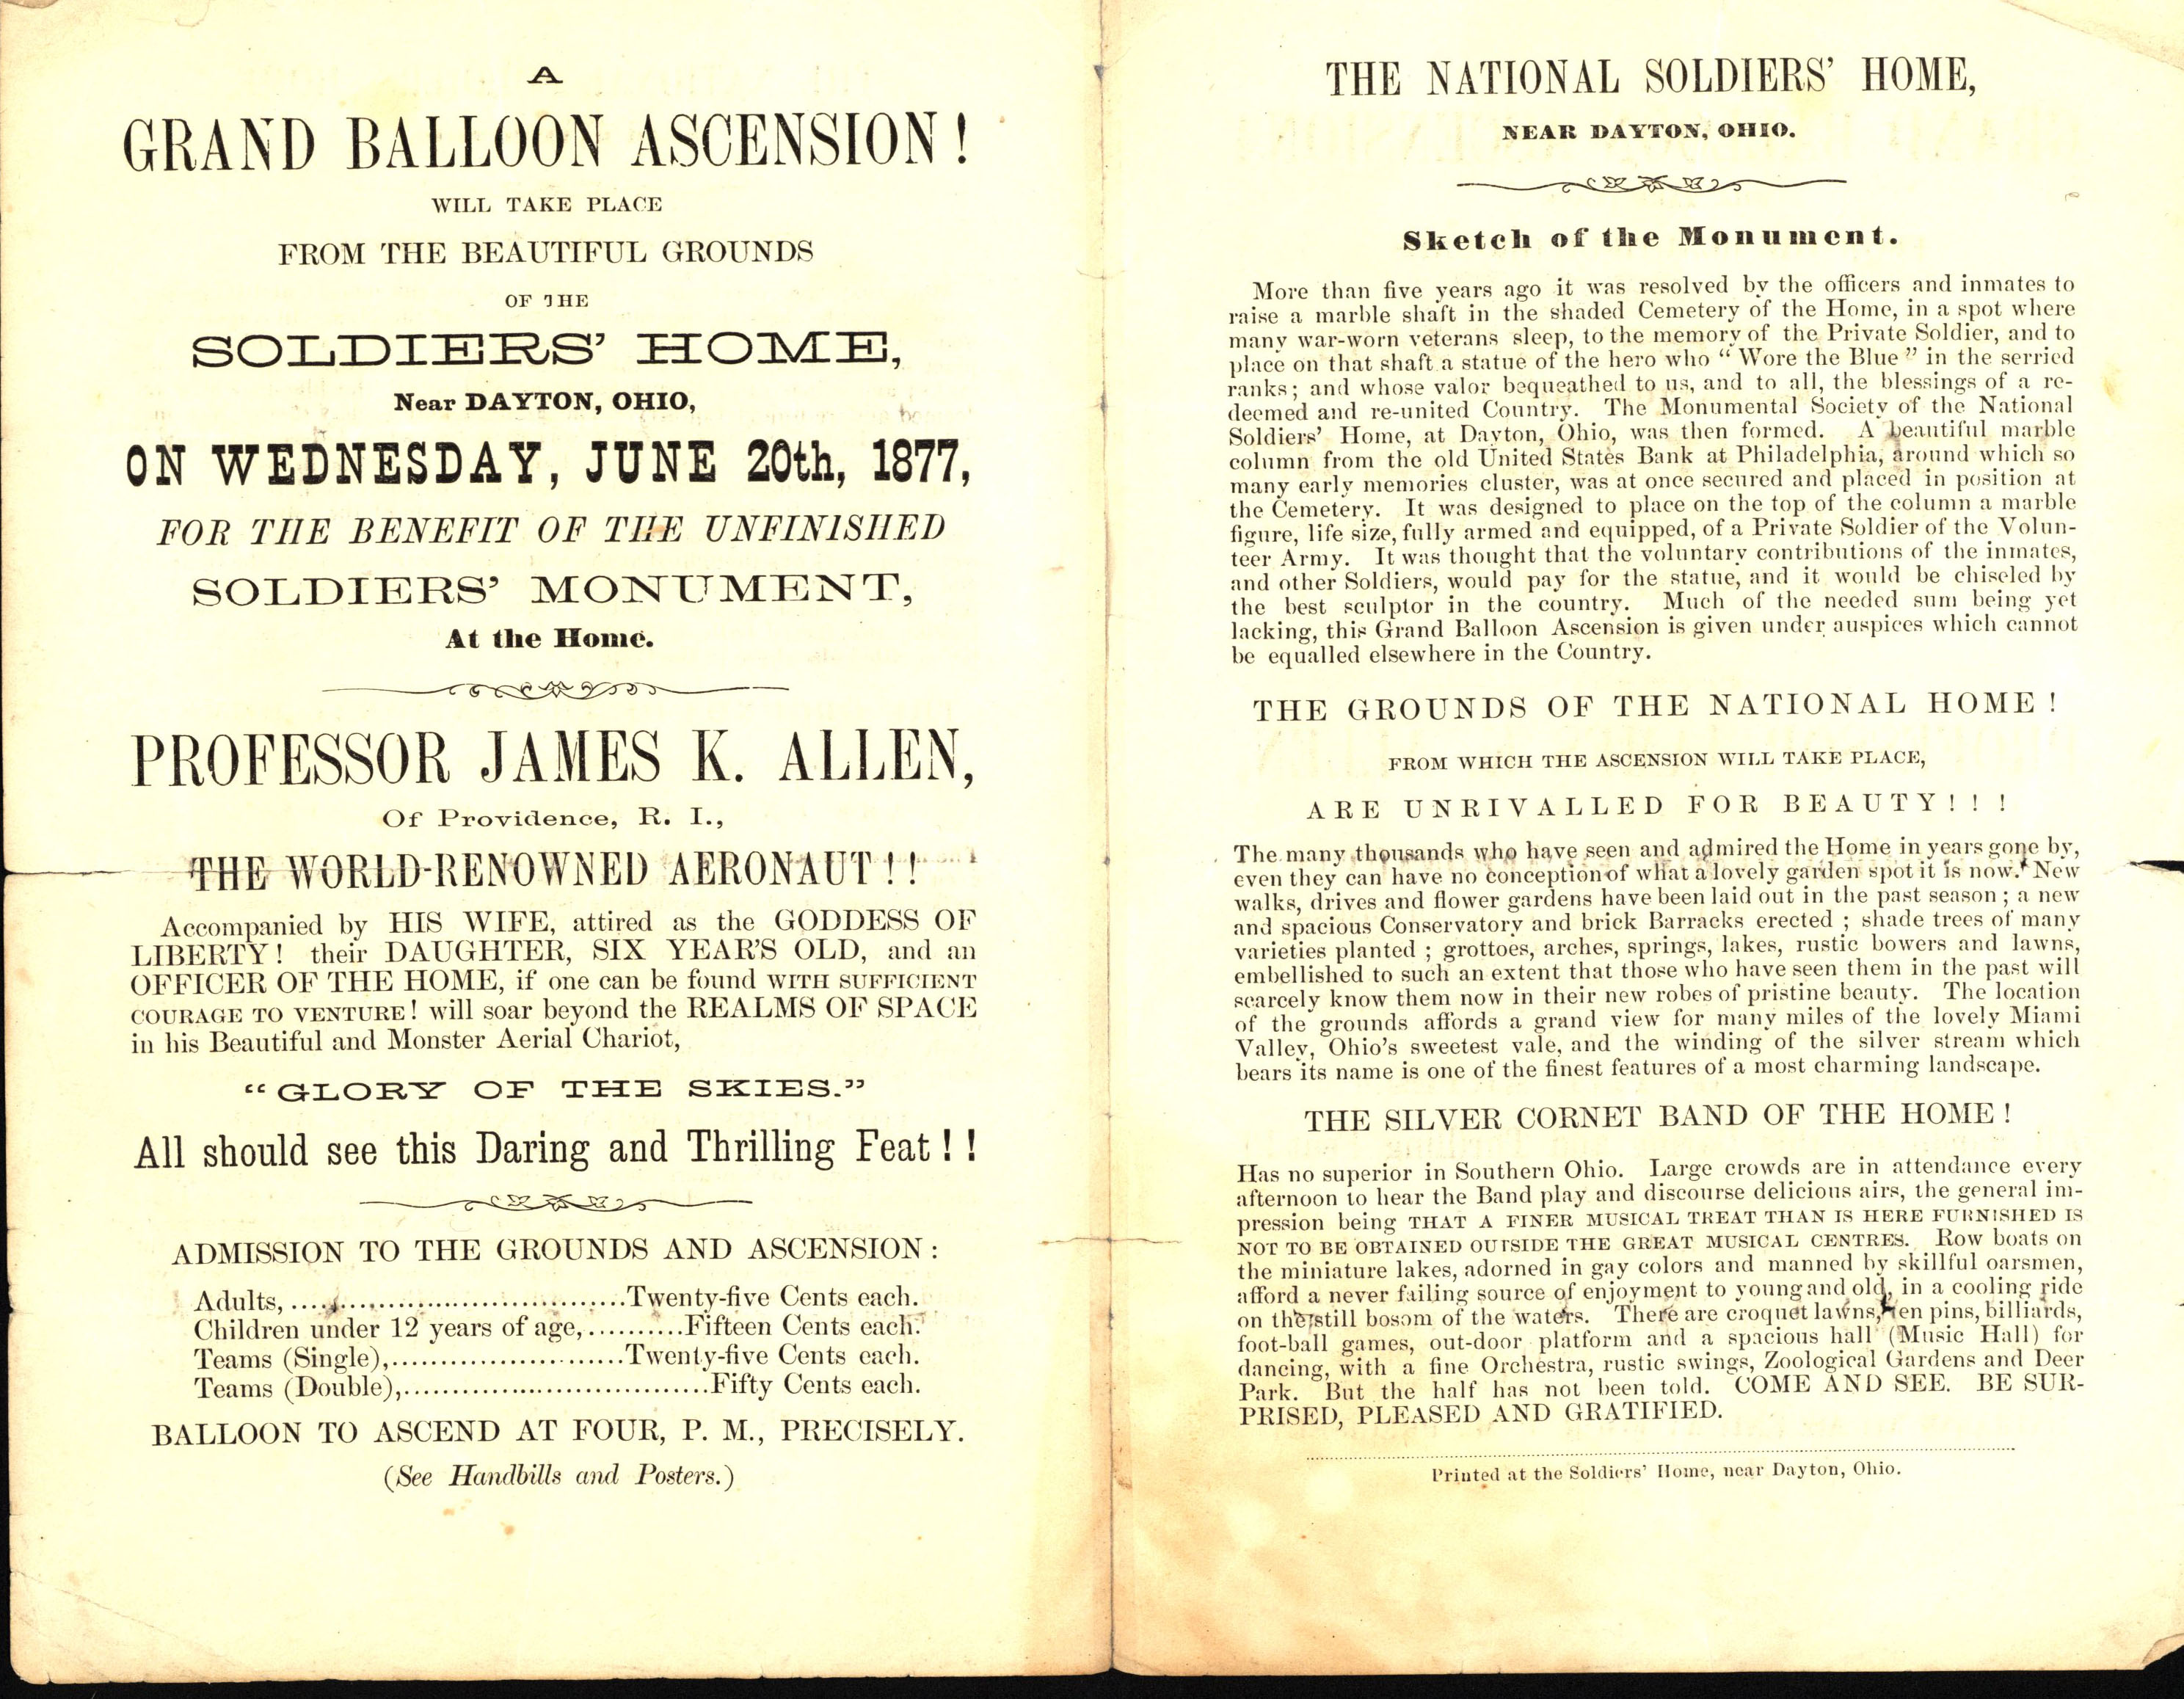 Advertisement from a balloon ascent at the Dayton Soldiers' Home, June 20, 1877